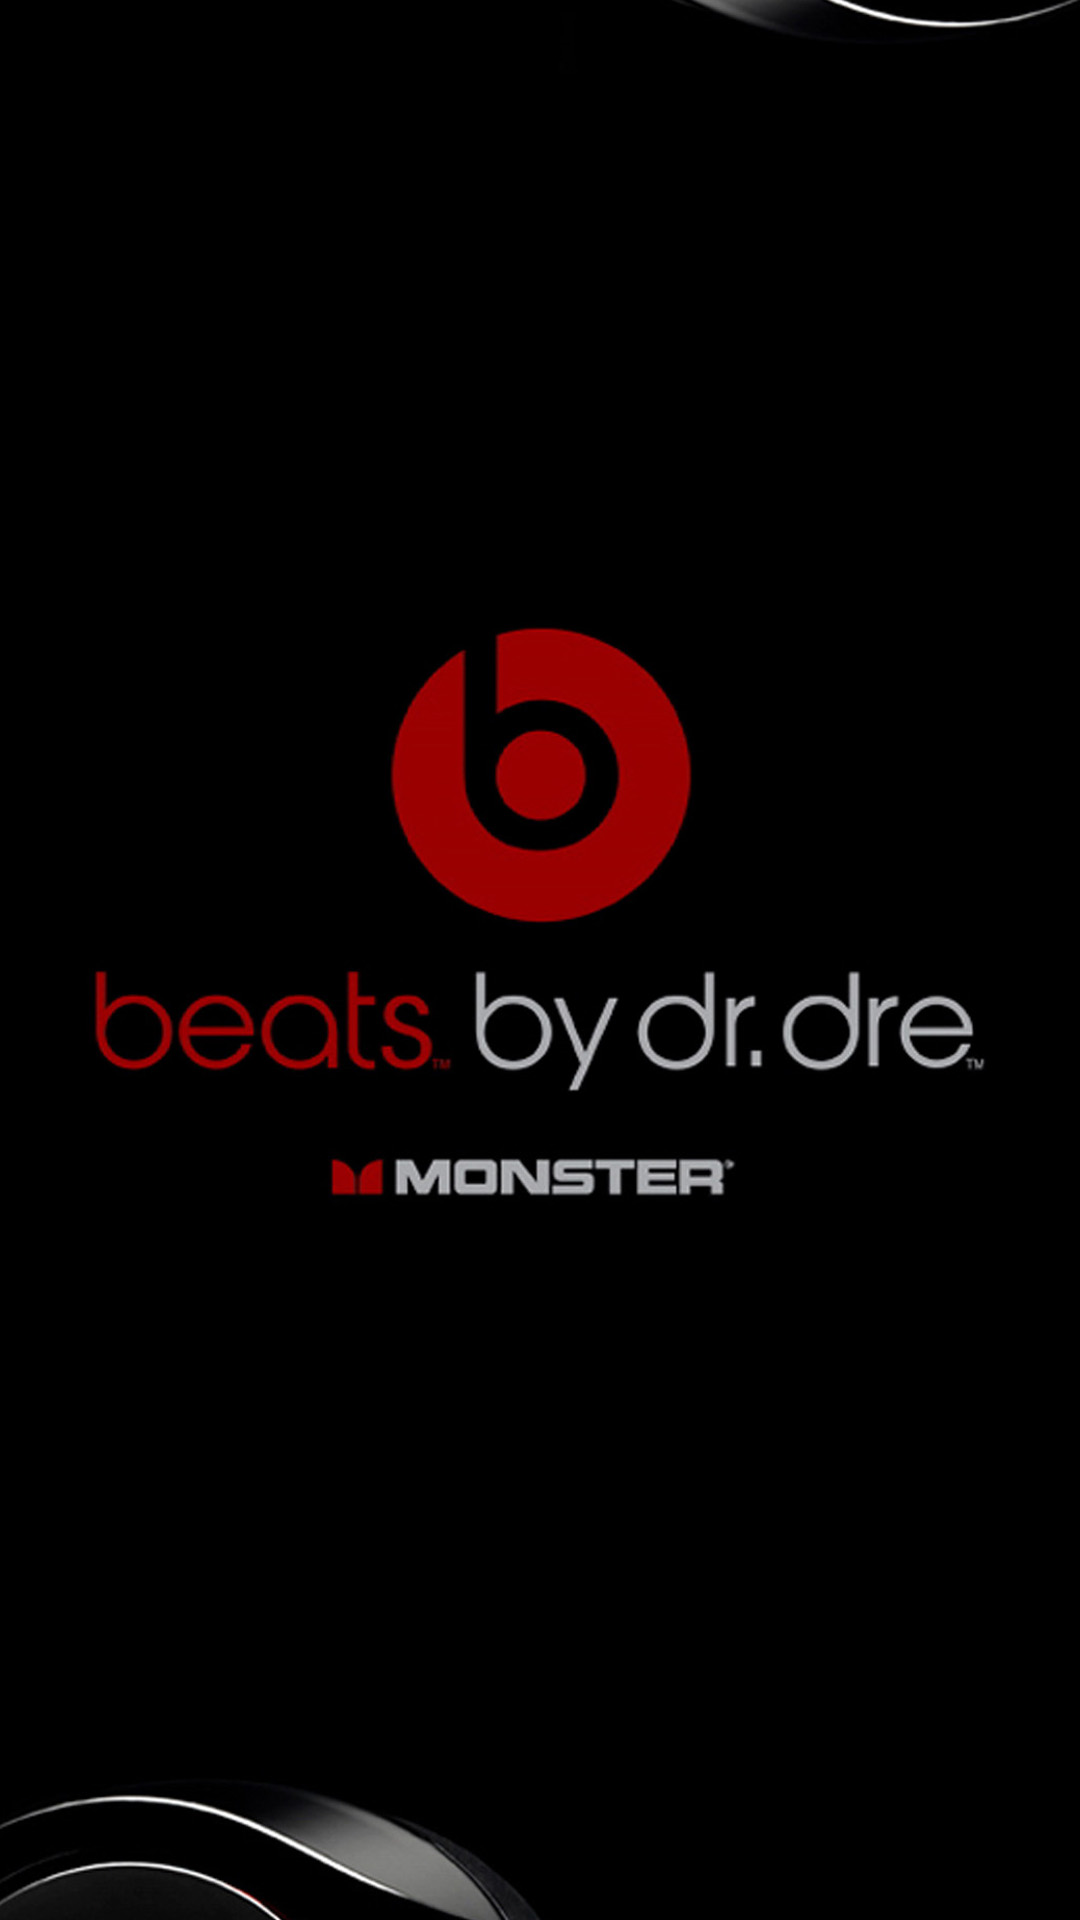 Beats-by-dre-Htc-One-M-1080%C3%971920-wallpaper-wp3402977